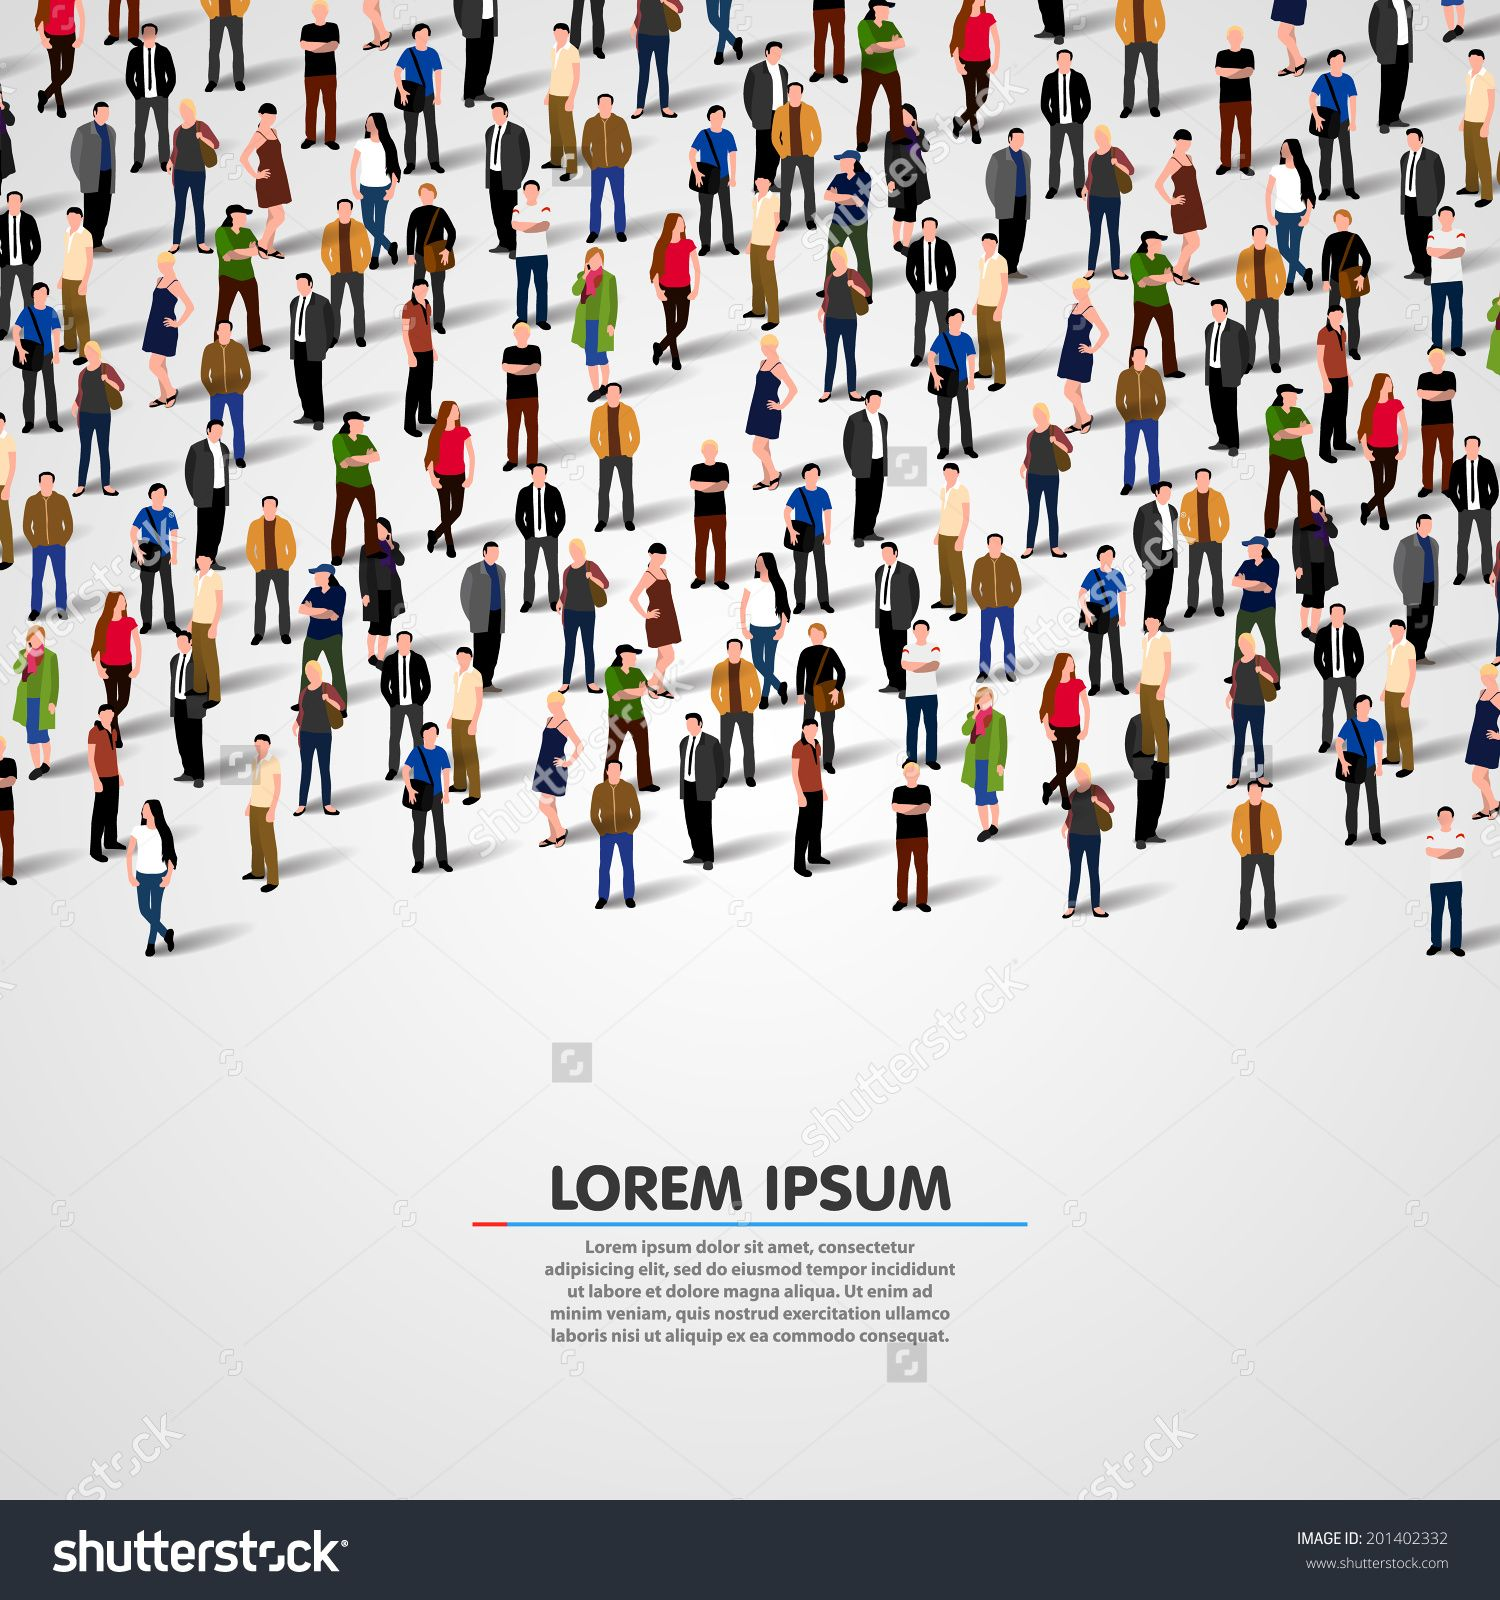 A Large Group Of People. Vector Background 201402332